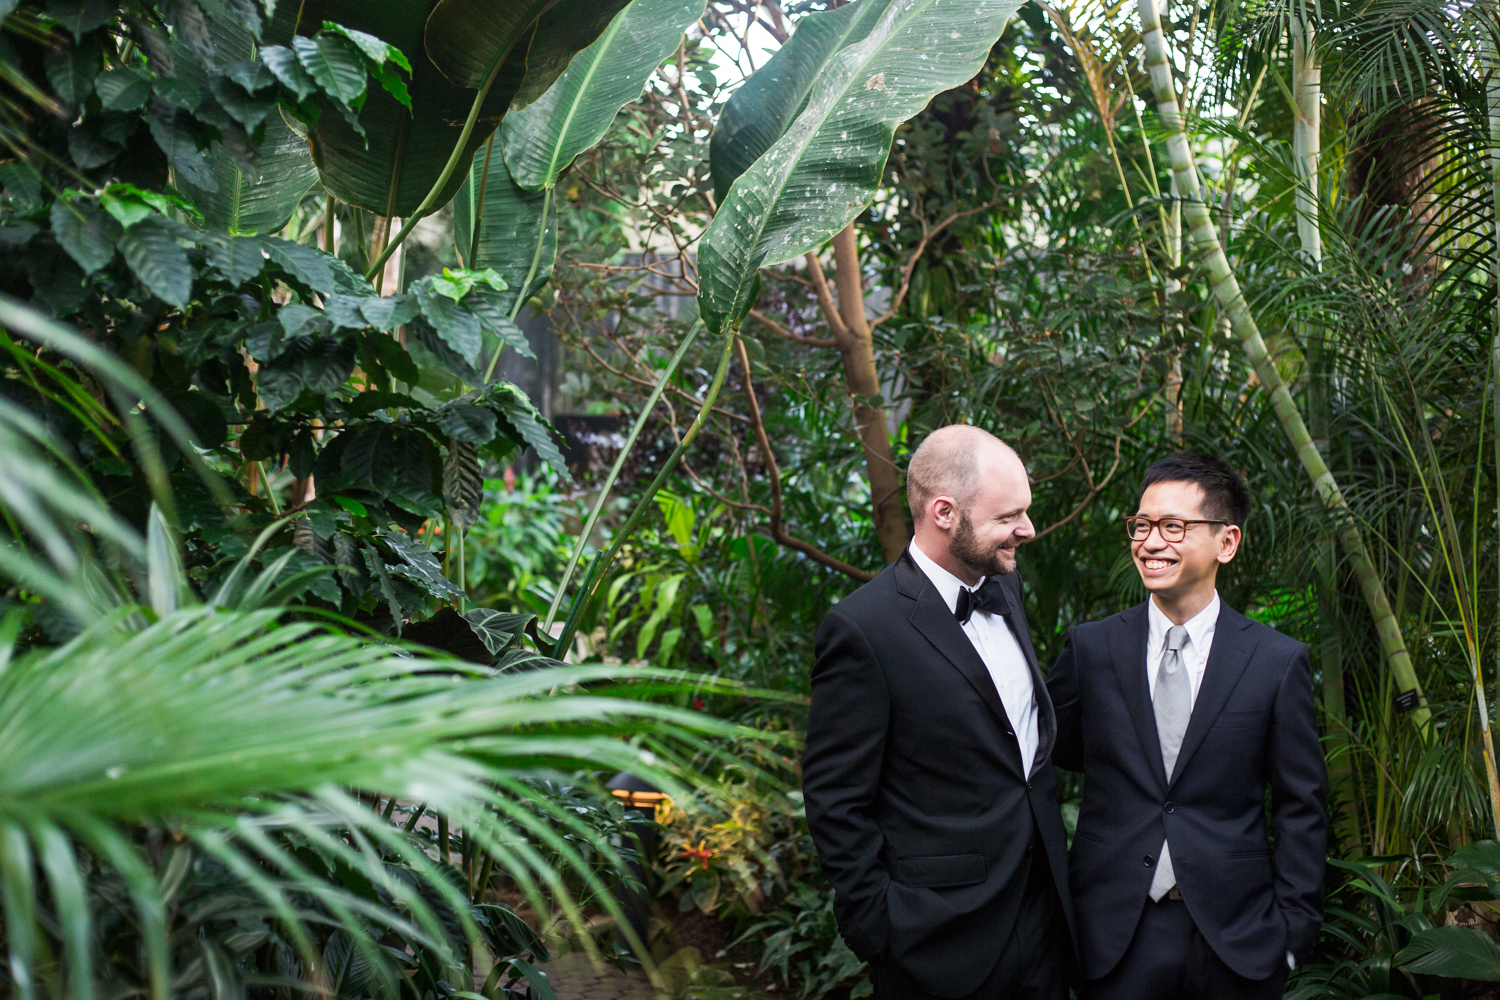 GAY WEDDING IN VANCOUVER – BRETT & ALEX